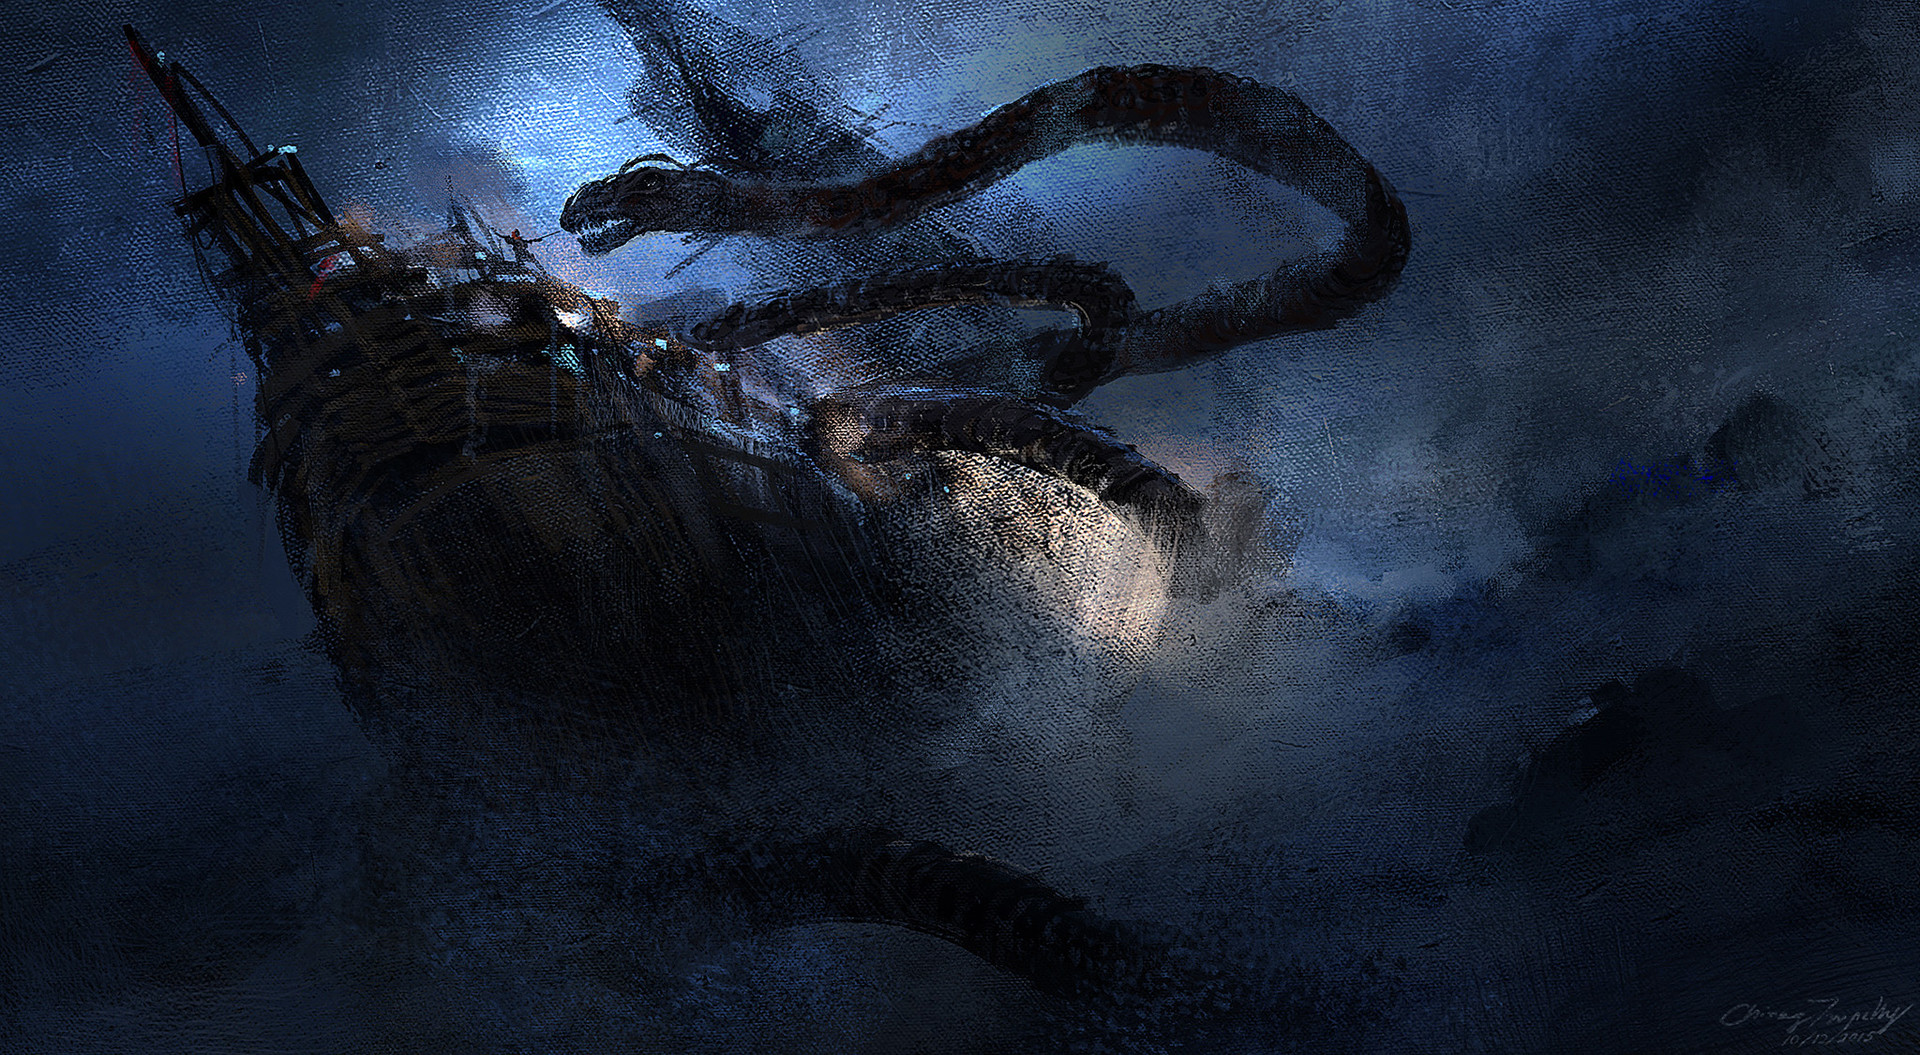 Chirag tripathy sea serpent l